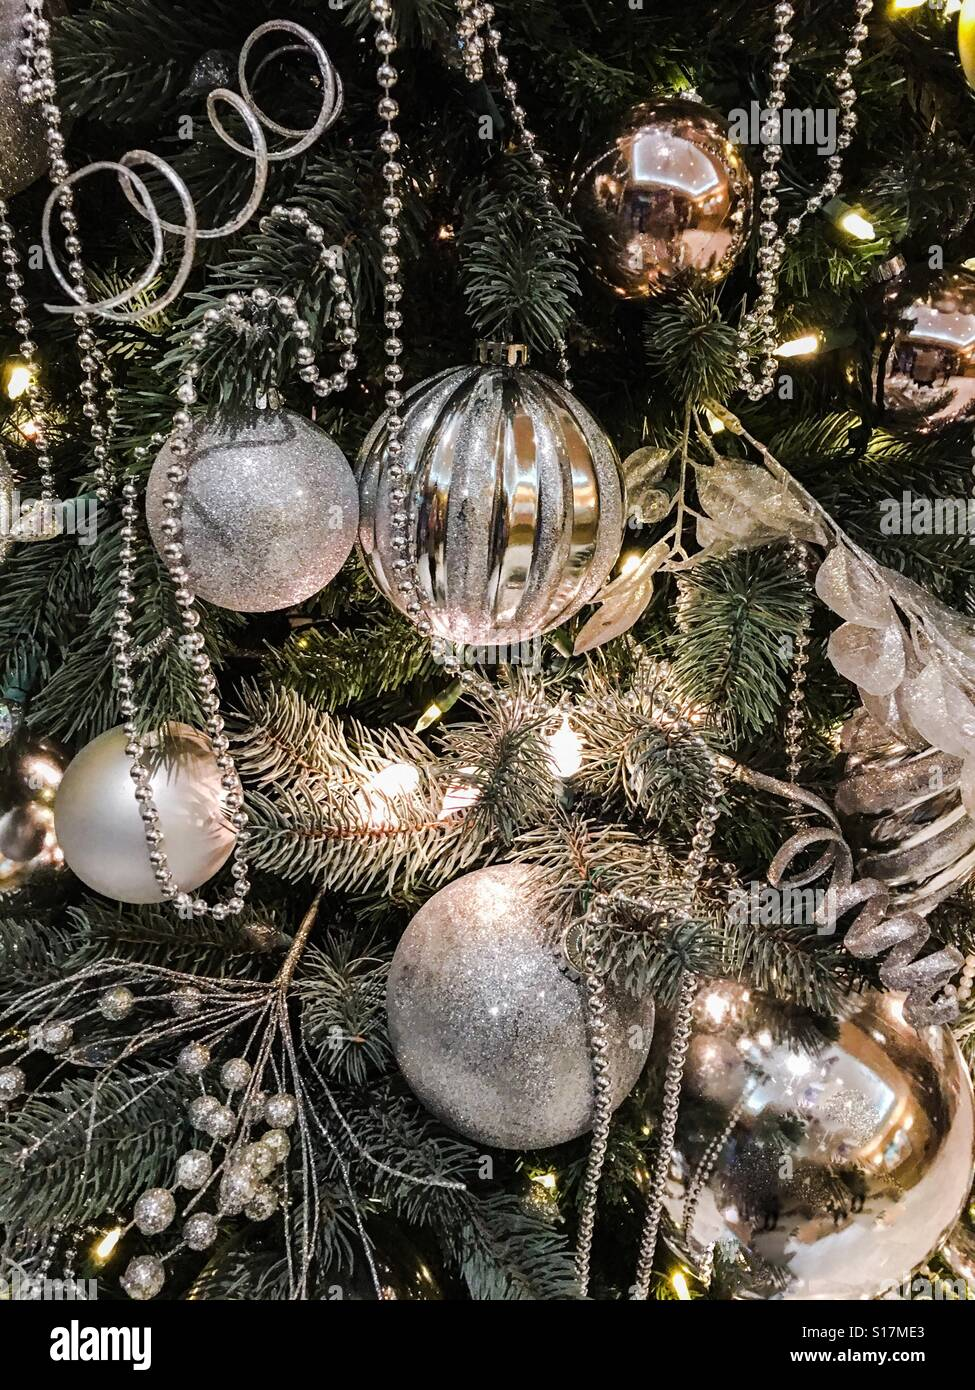 Expensive Christmas Ornaments.Expensive Ornaments Stock Photos Expensive Ornaments Stock